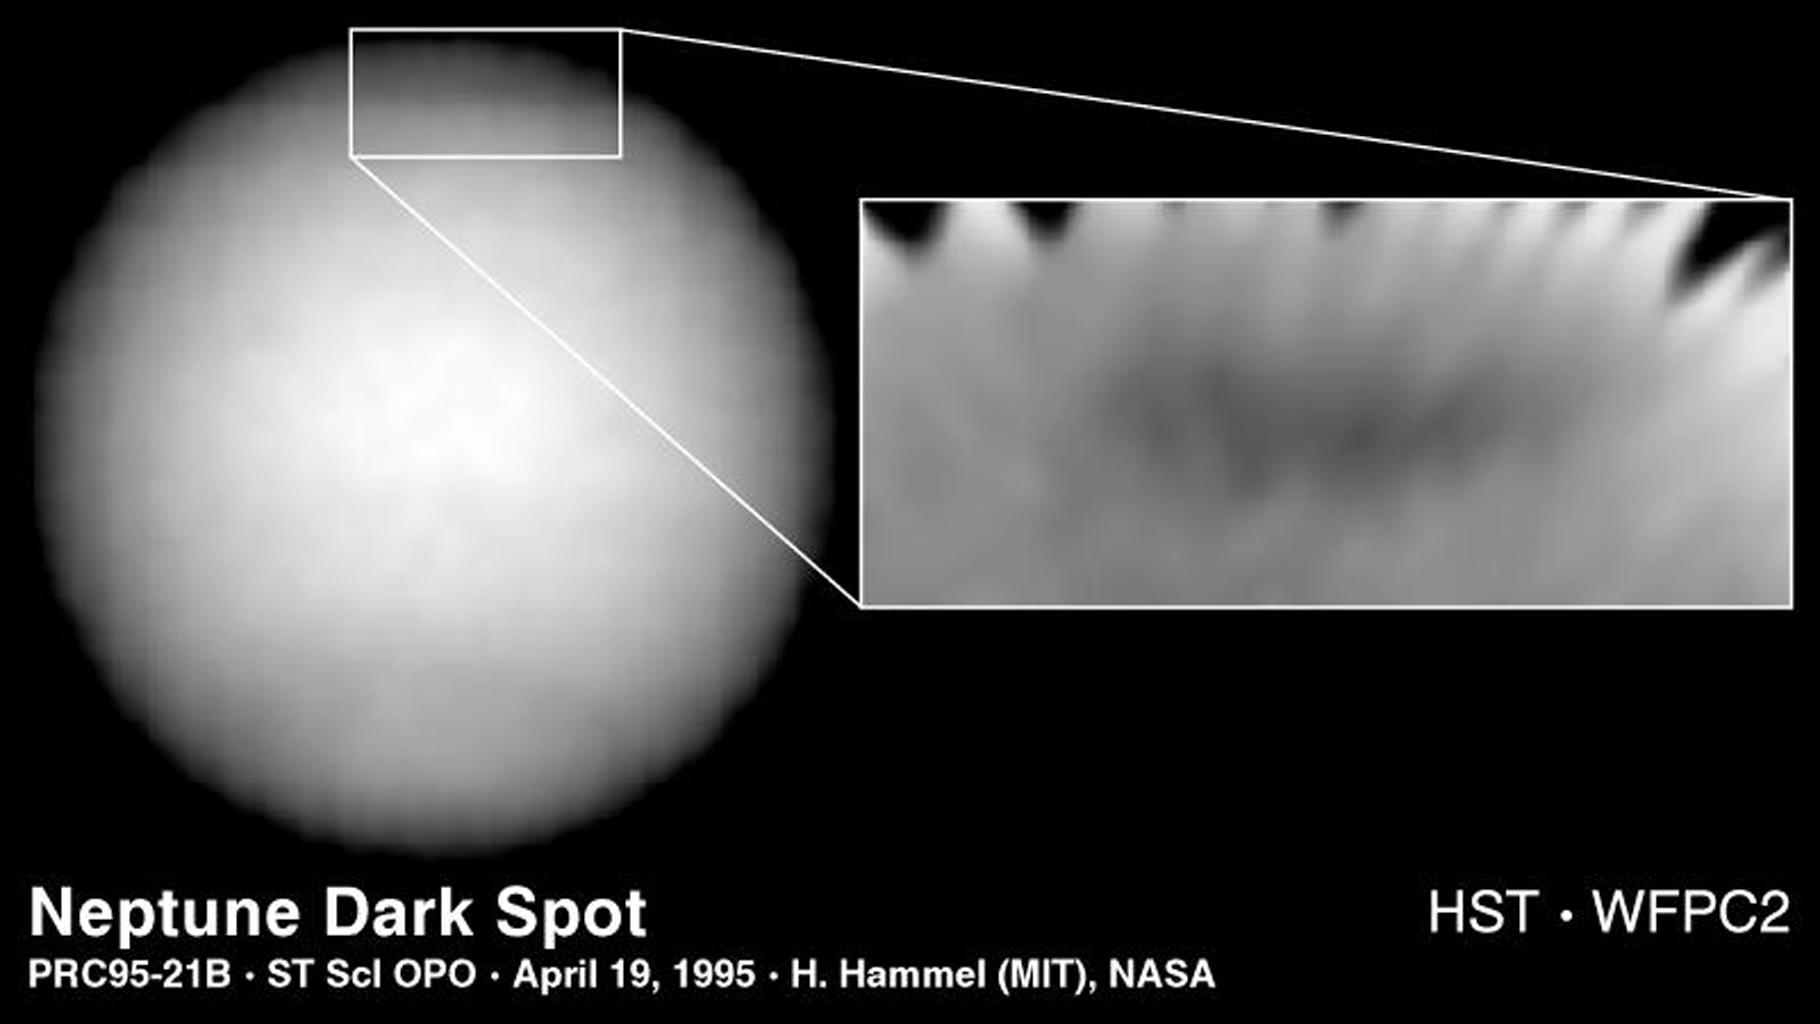 In 1995, NASA's Hubble Space Telescope discovered a new great dark spot, located in the northern hemisphere of the planet Neptune. Because the planet's northern hemisphere was tilted away from Earth, the new feature appeared near the limb of the planet.